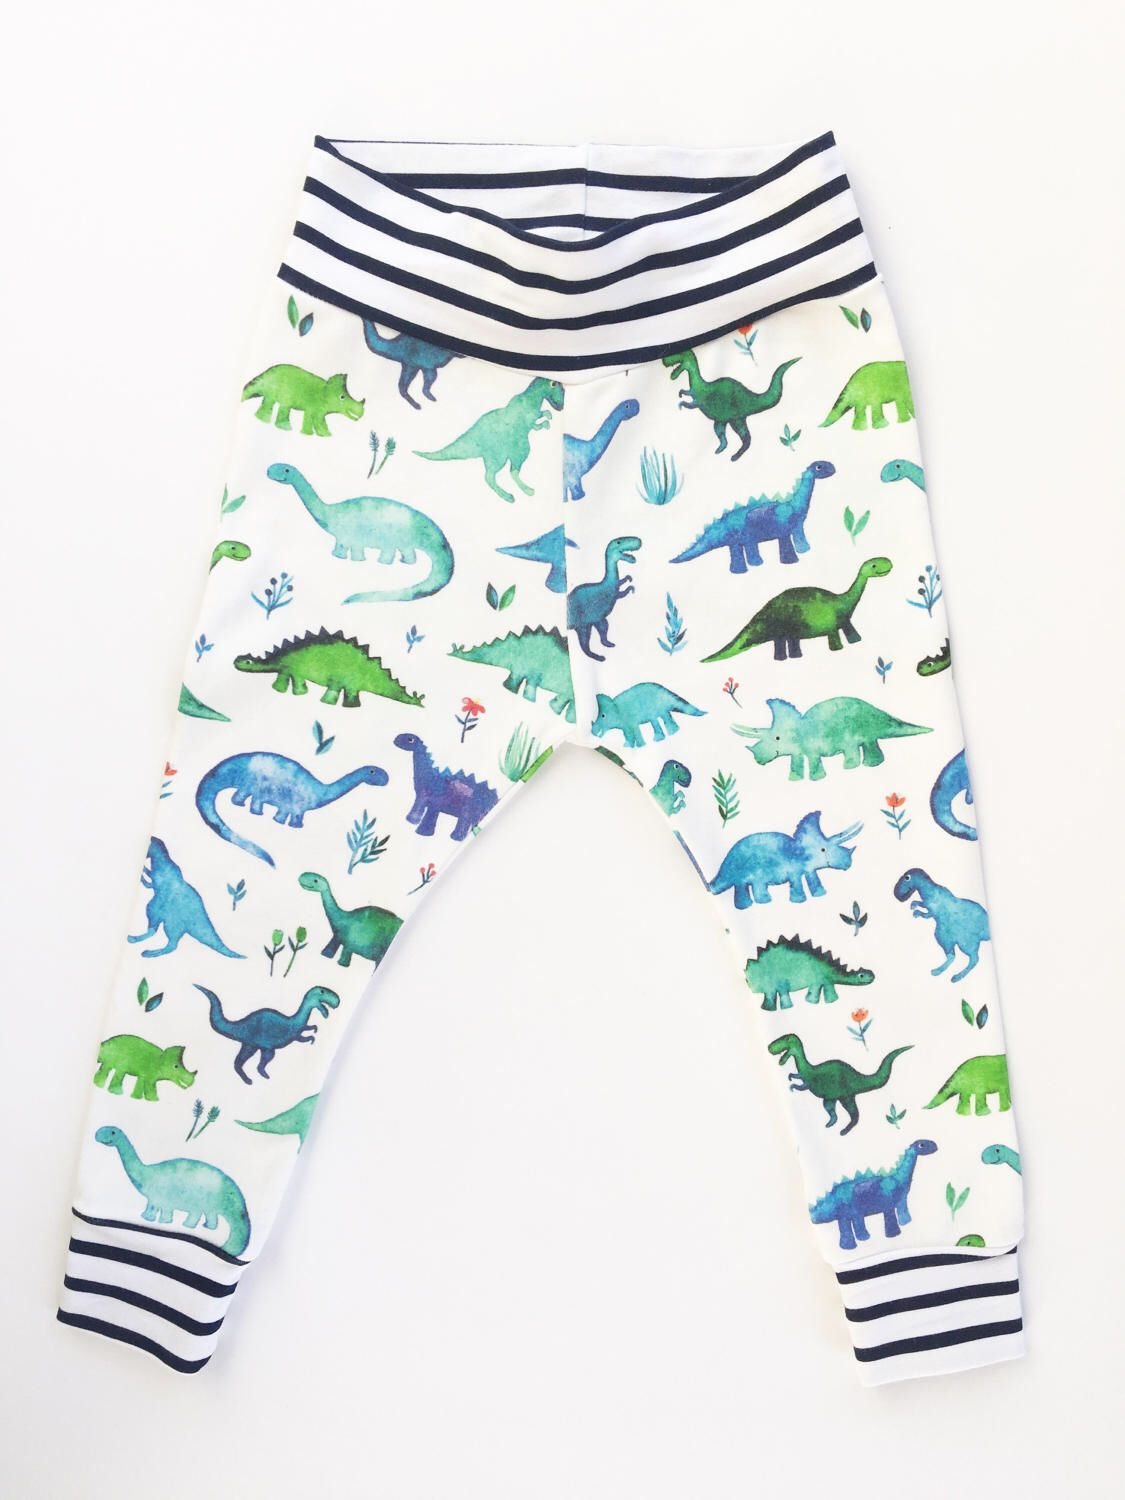 100% Organic Cotton Watercolor Dinosaur Baby Toddler Navy Stripes Cuffed Leggings Yoga Waistband and Navy White Stripes Slouch Beanie by GreyandCrew on Etsy https://www.etsy.com/listing/518699507/100-organic-cotton-watercolor-dinosaur